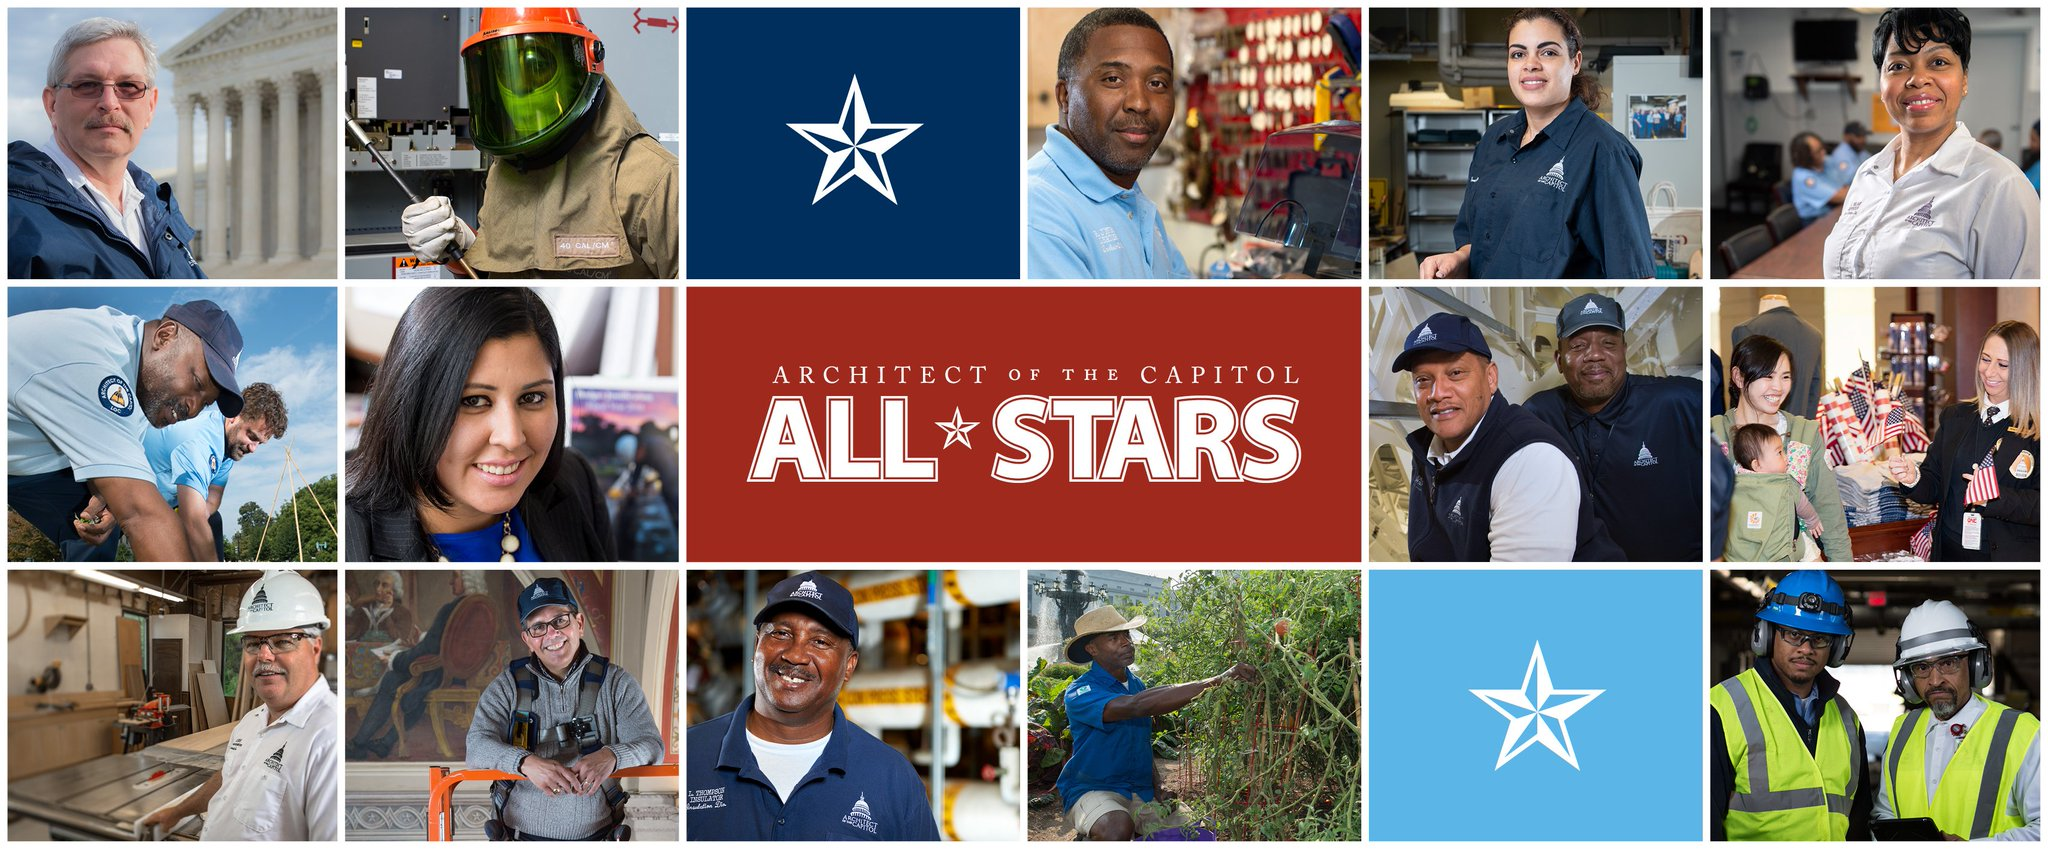 Soon @MLB will honor its best players during the 2018 #AllStarGame. During the rest of July, we will highlight members of our AOC team and the facilities we operate. We consider them the very best fielded in the nation's capital. #AllStarAOC https://t.co/MjsIMWDfOr